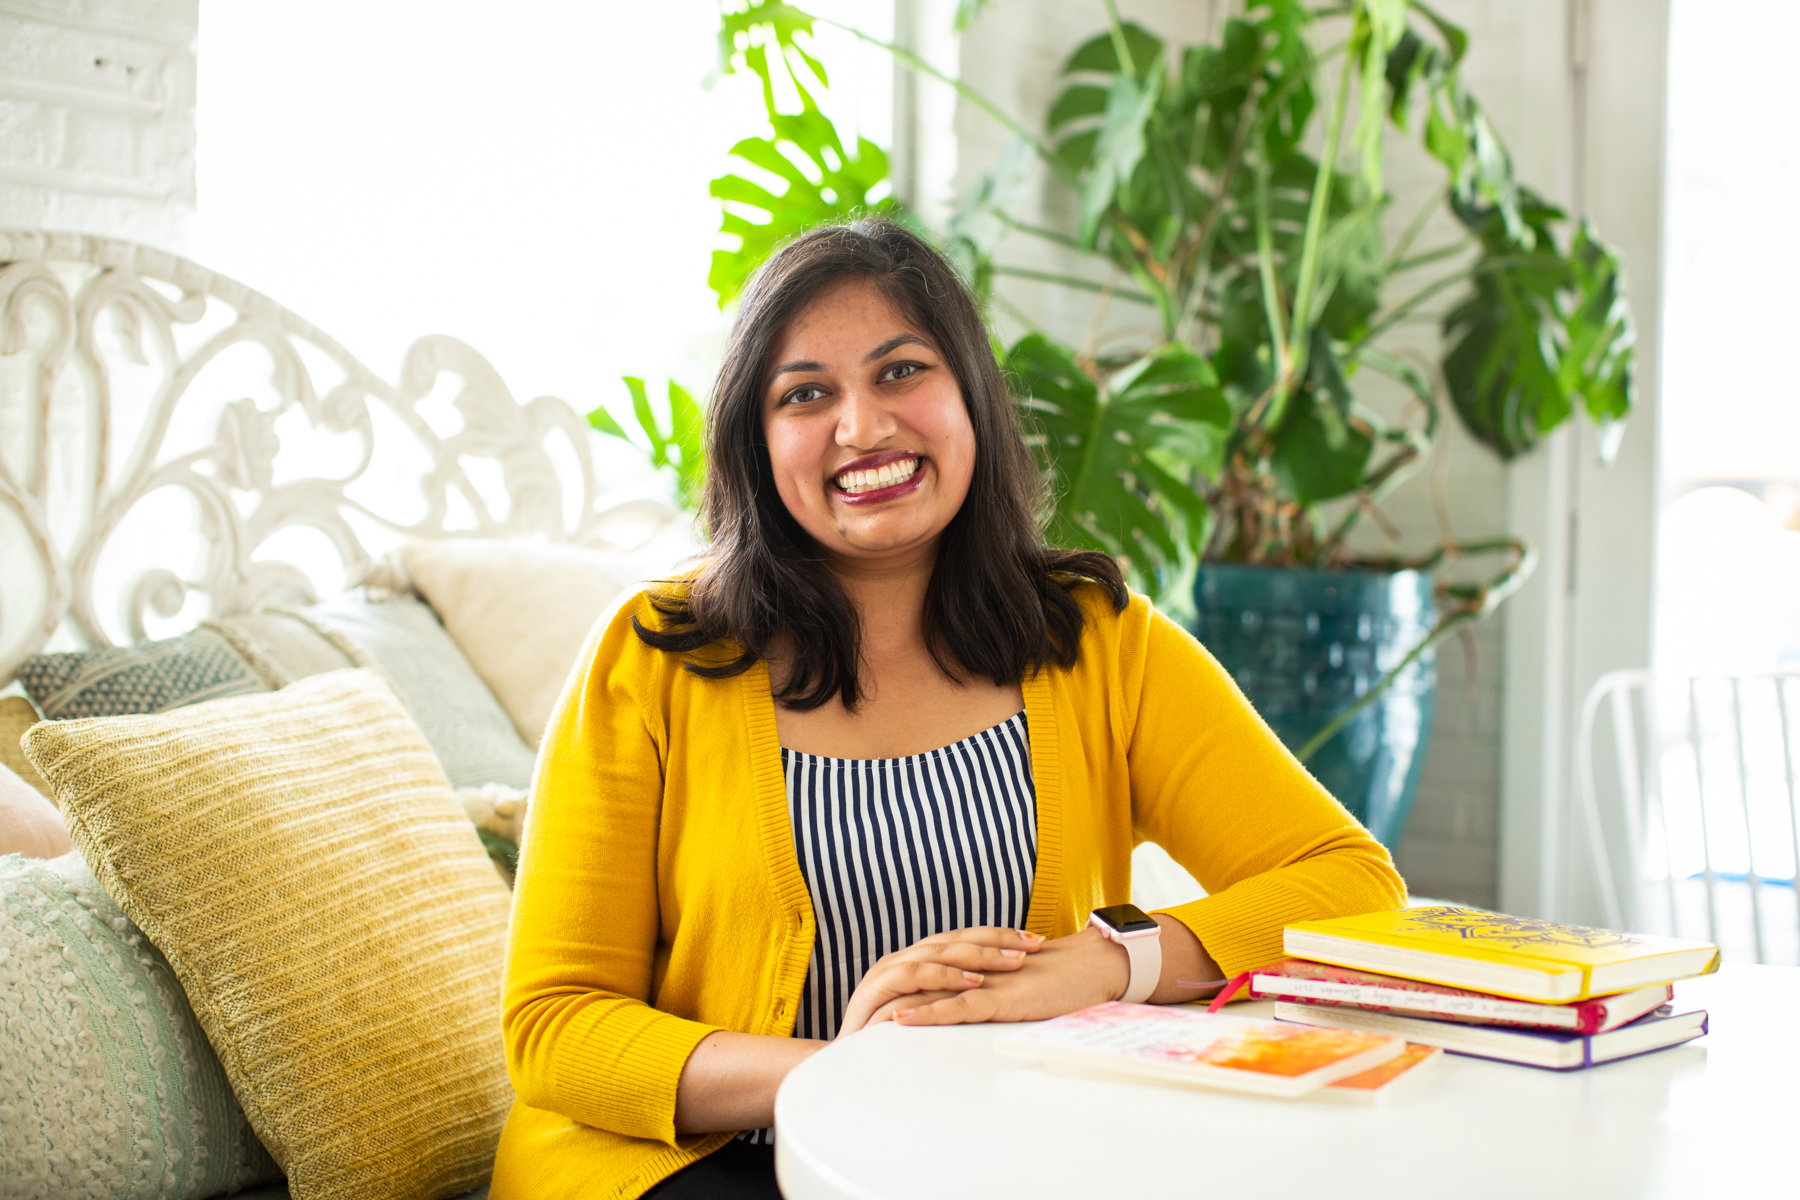 "Featured image: Sharanya Sharma. Sharma sits with hands folded on a white table, with copies of ""Set Fire to This Crooked House"" and multi-colored notebooks in the foreground. Sharma wears a marigold cardigan open over a black and white striped shirt and smiles at the camera. Behind Sharma are several pastel throw pillows and a large plant, and natural light comes through the windows. Photo by Kristie Kahns Photography."